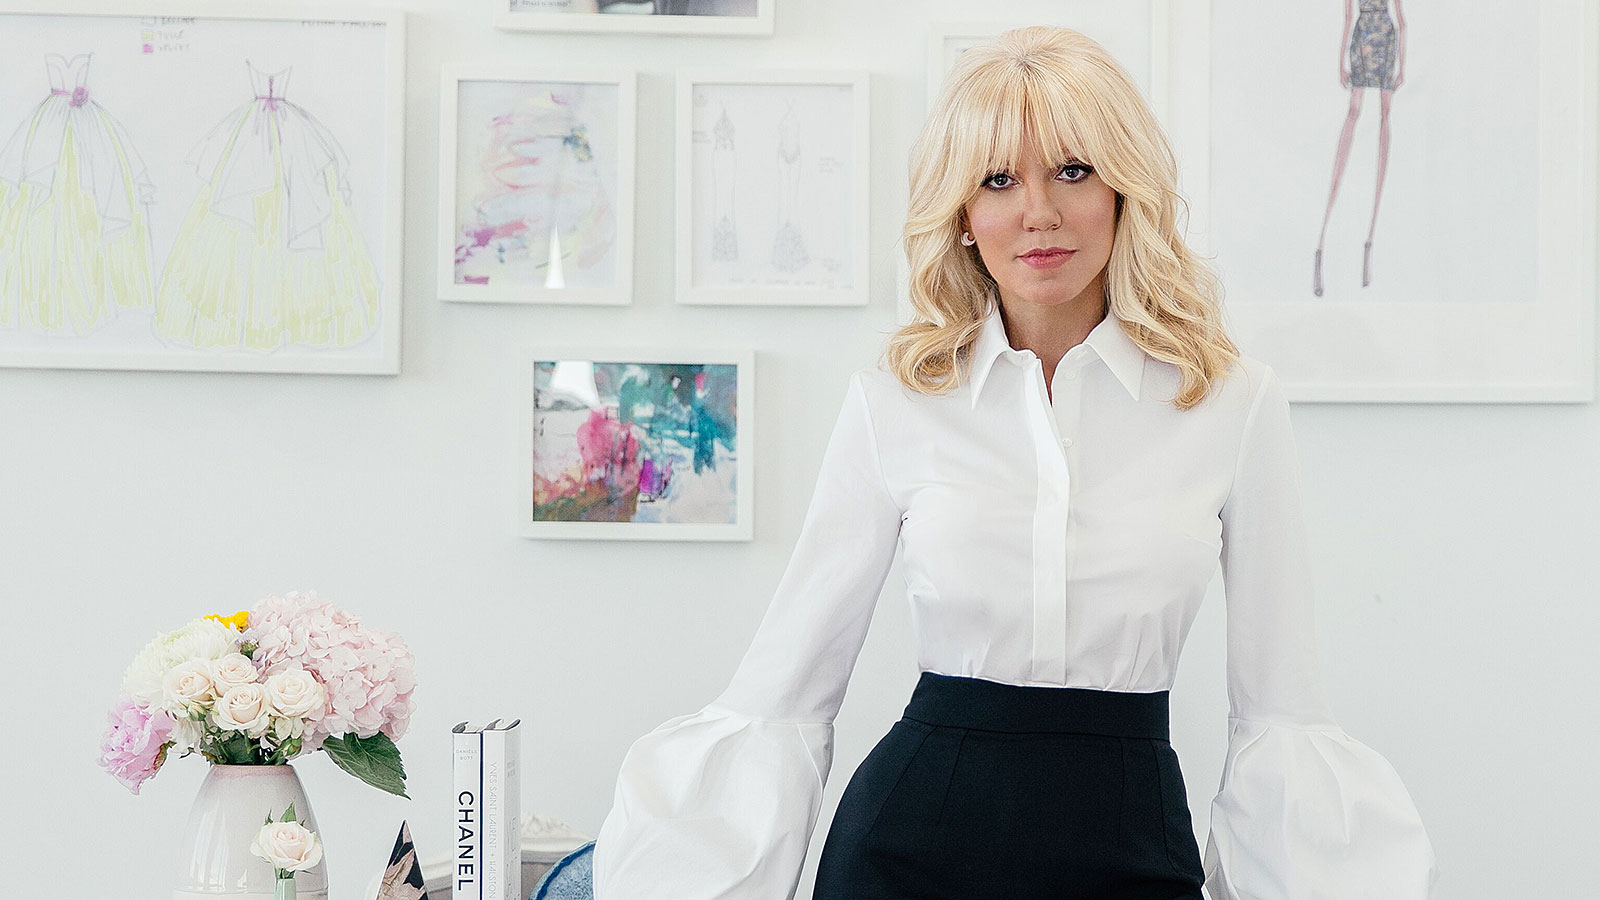 How To Build A Capsule Collection According To Designer Fotini Copeland